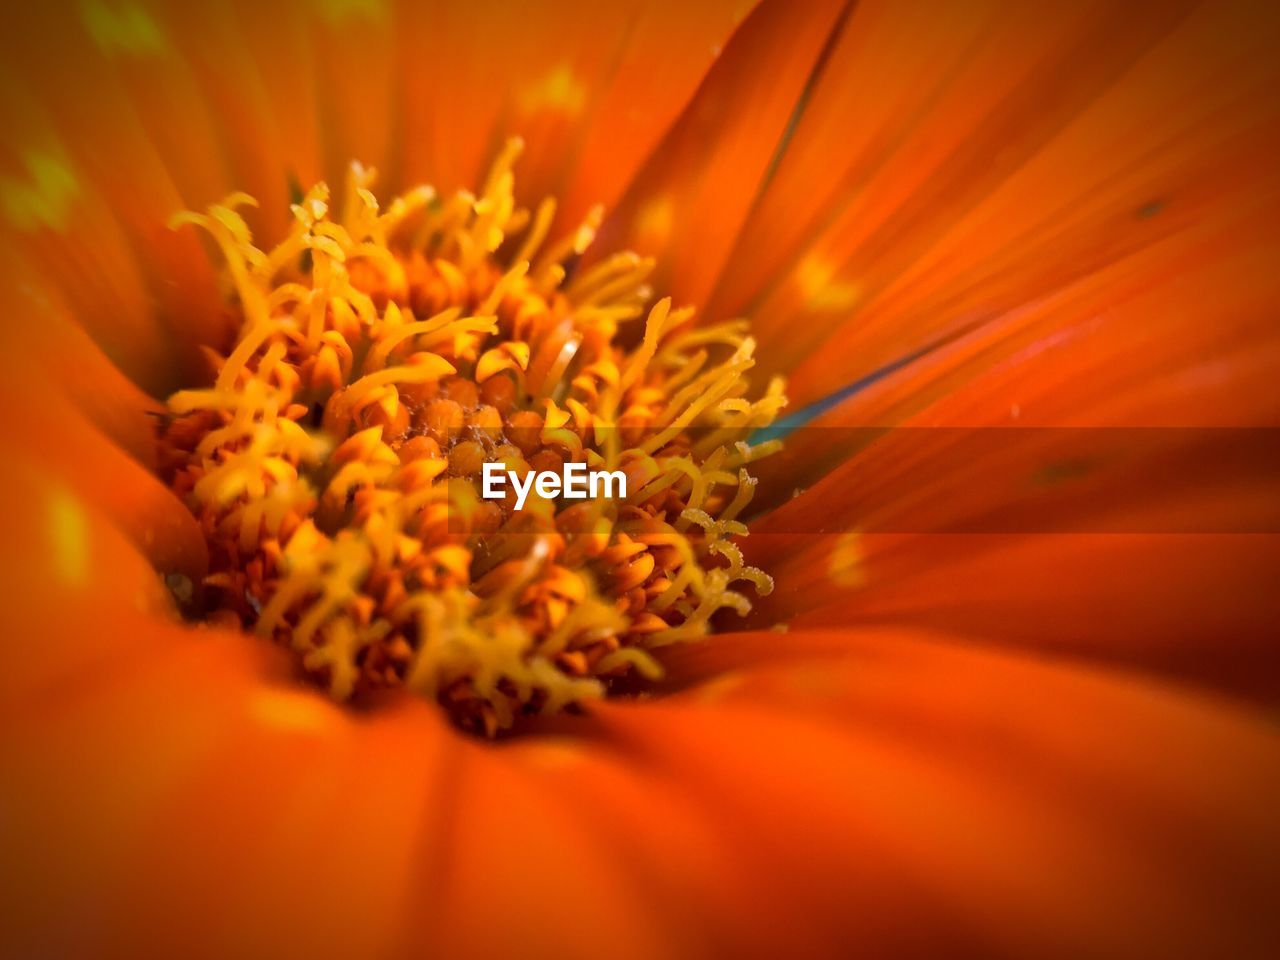 flower, petal, beauty in nature, orange color, nature, freshness, fragility, flower head, growth, selective focus, pollen, blooming, plant, no people, close-up, yellow, outdoors, marigold, backgrounds, day